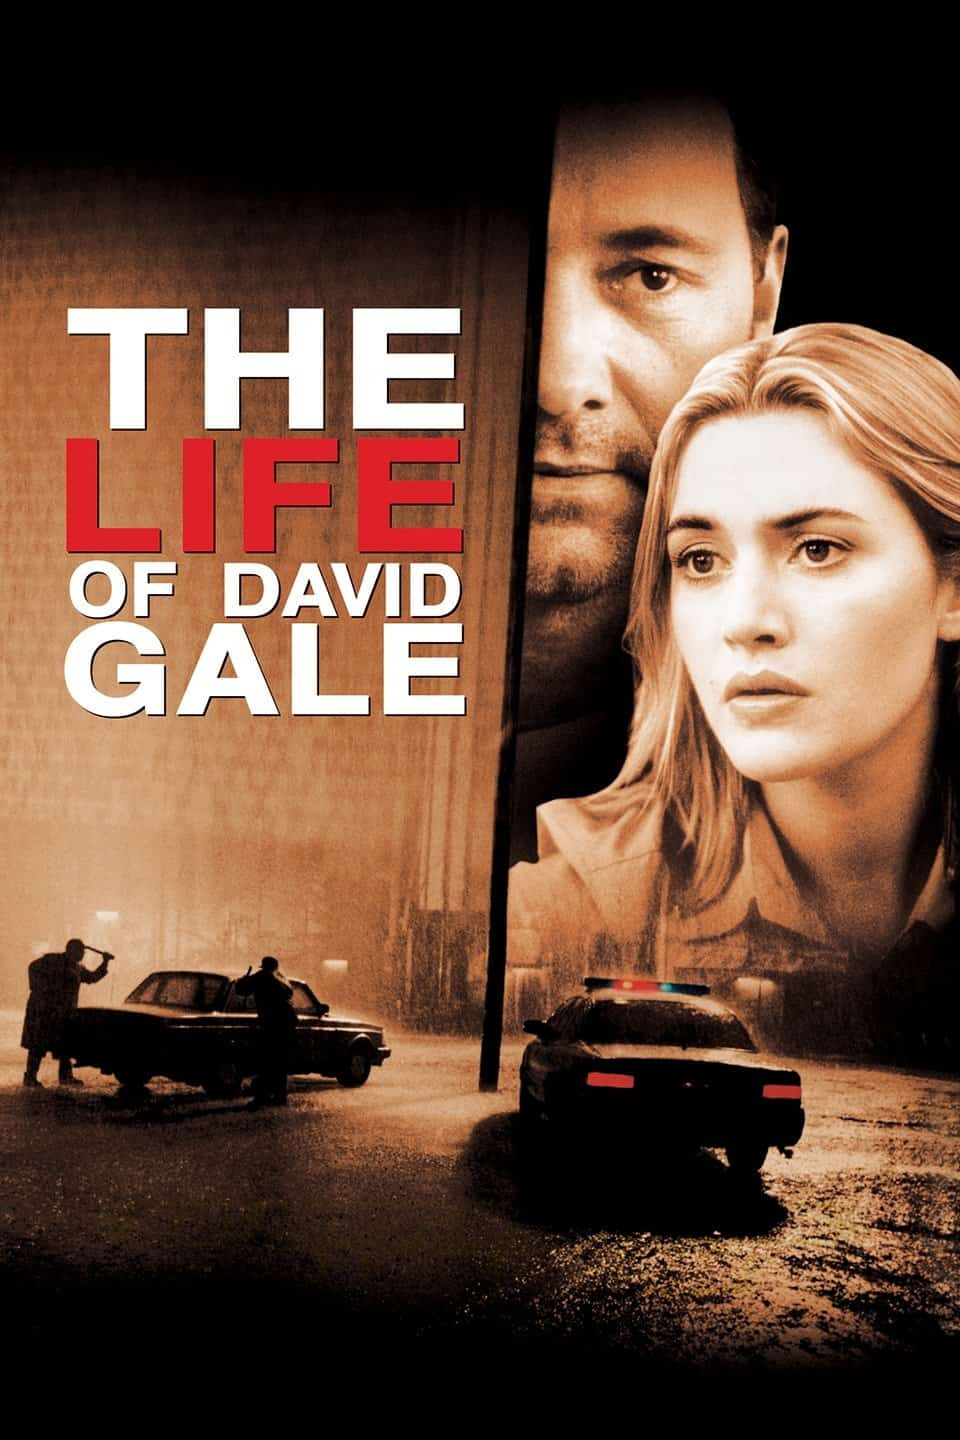 The Life of David Gale, 2003